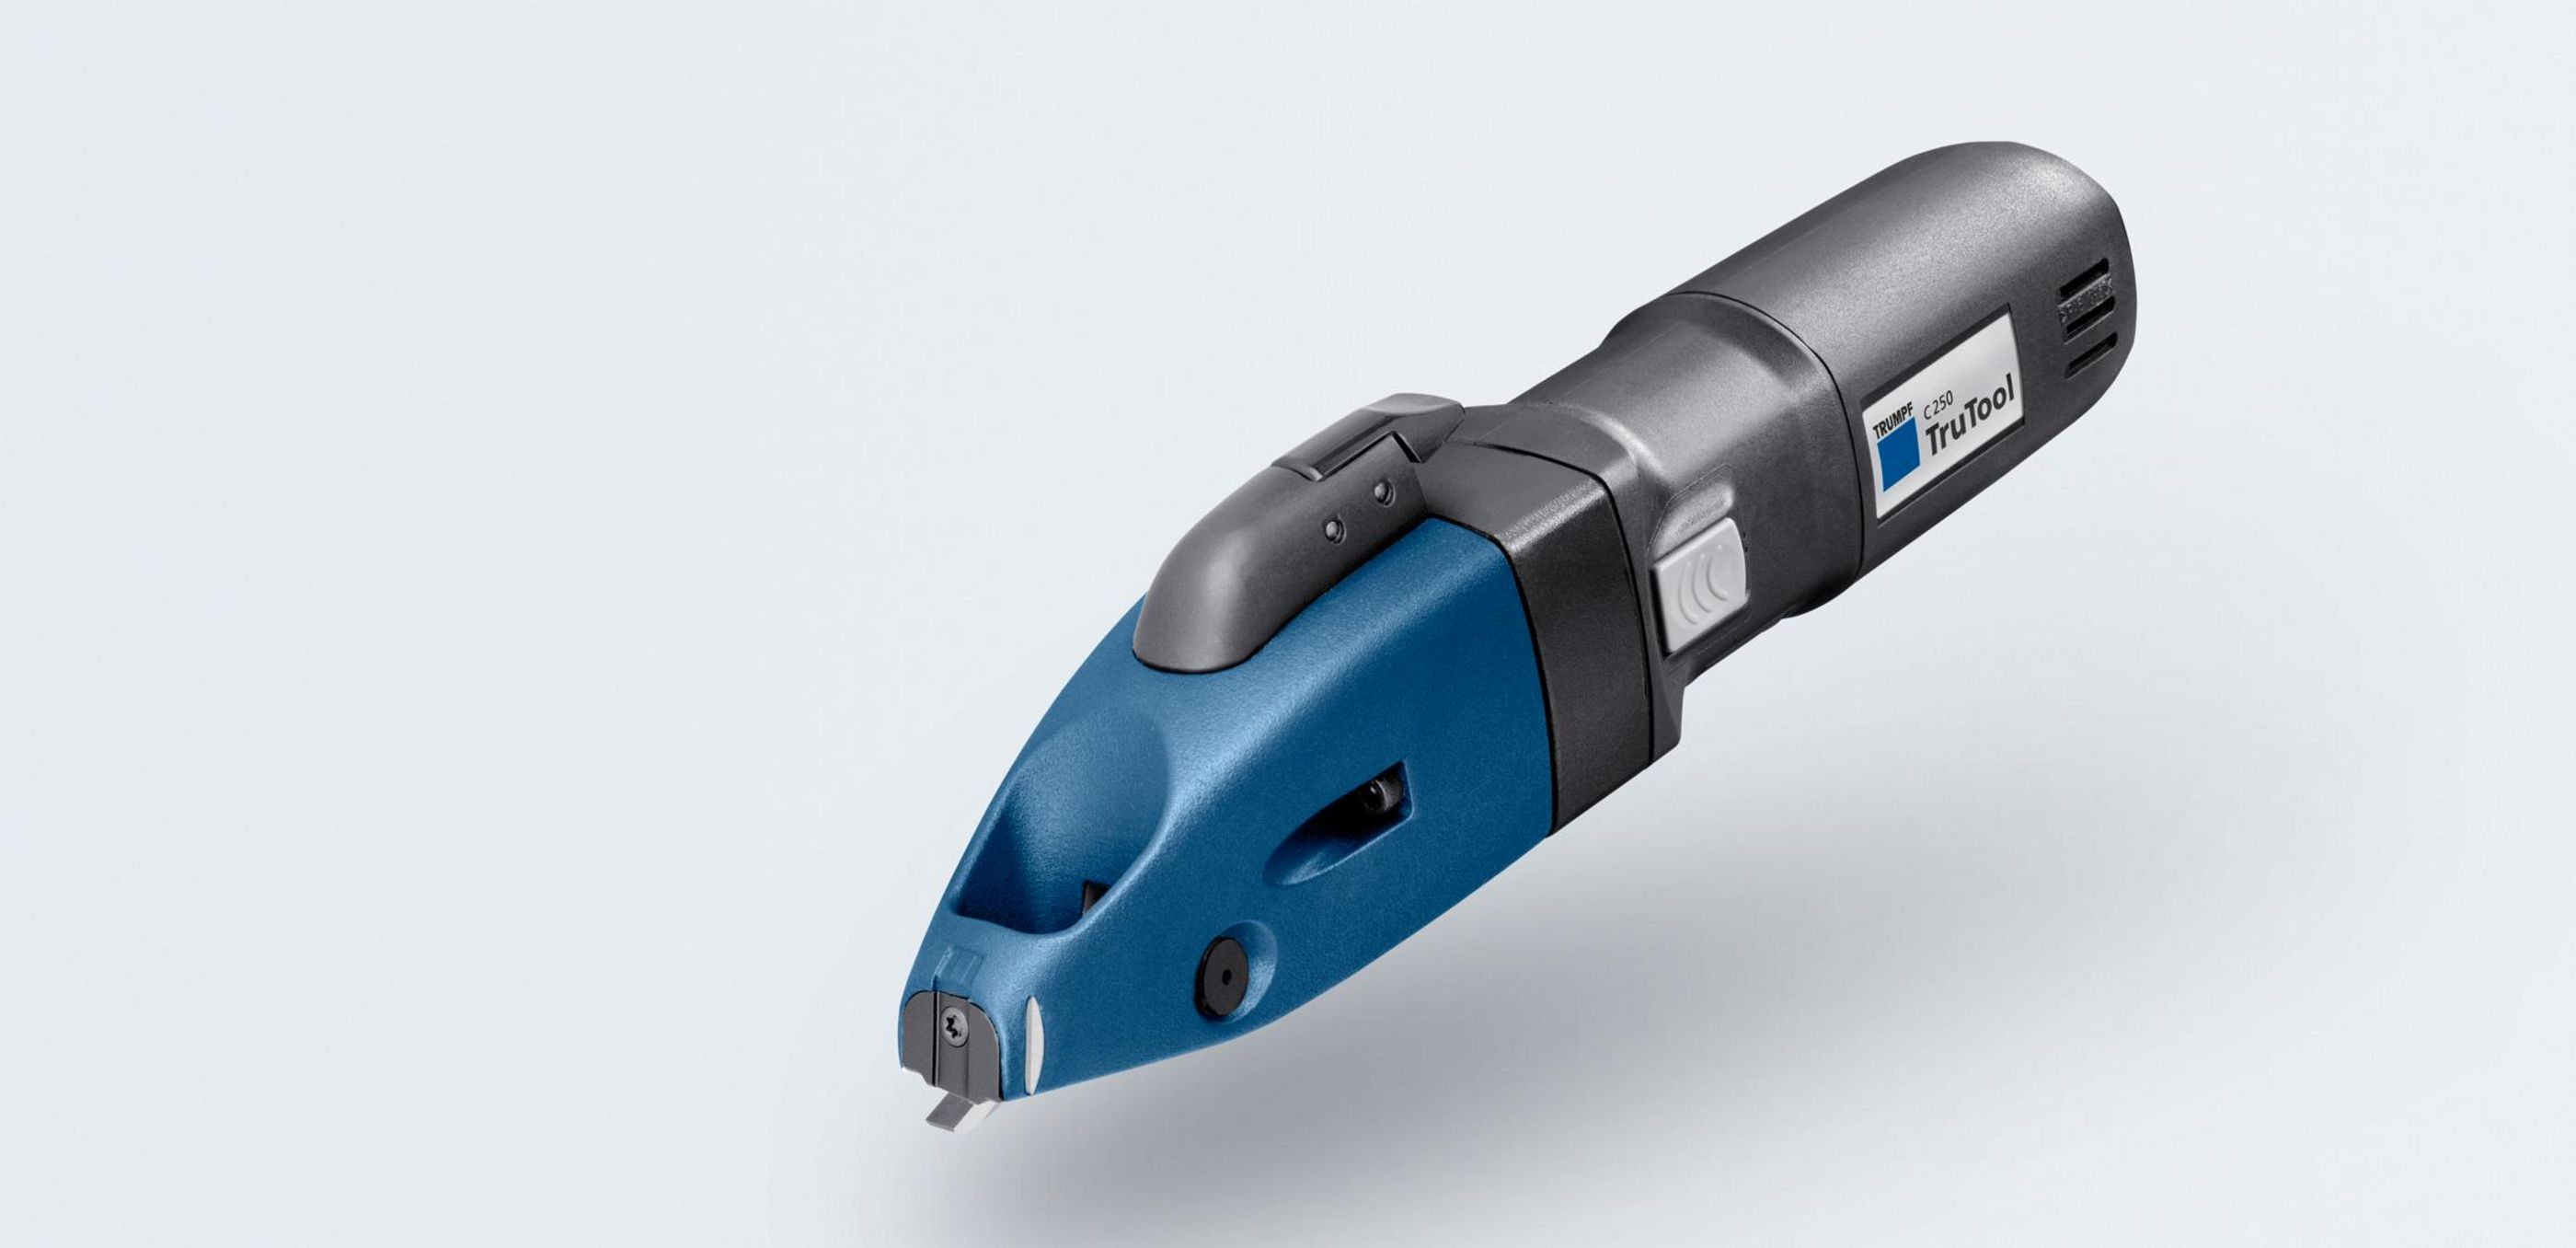 TruTool C 250 chip clipper